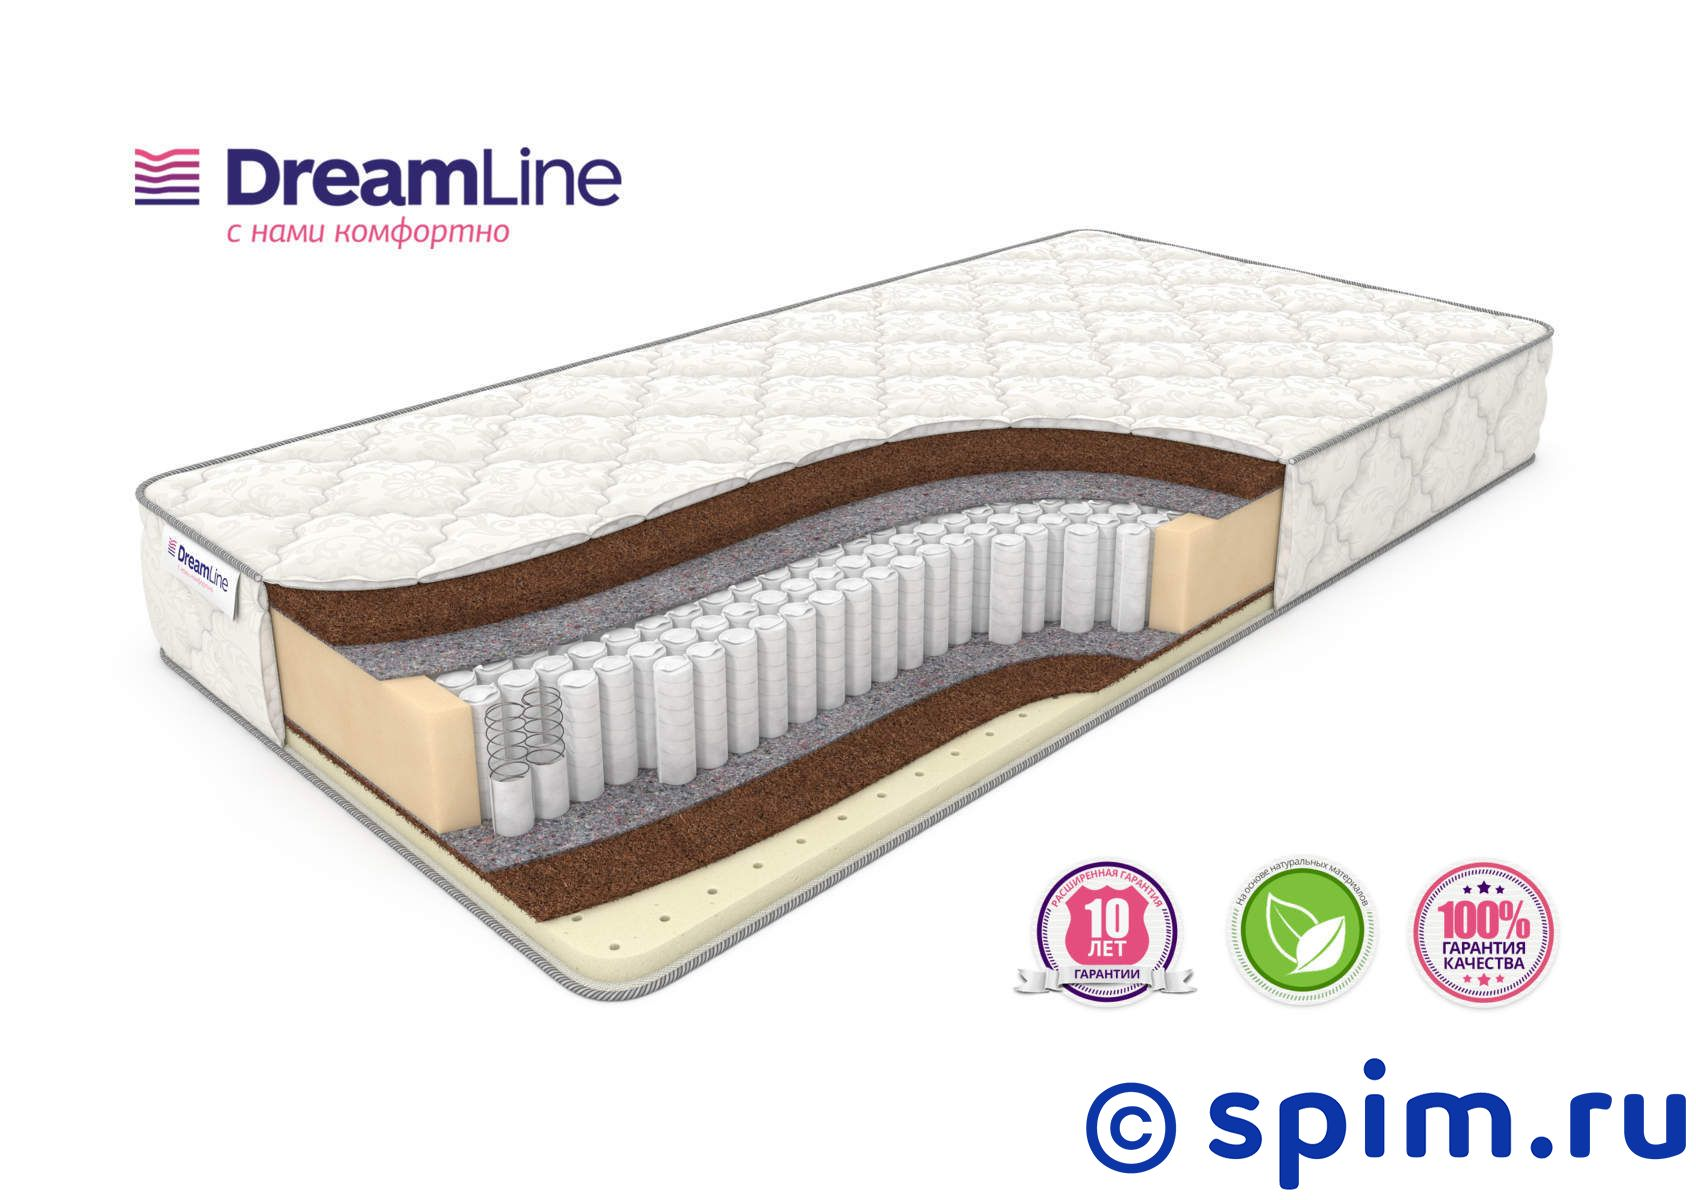 Матрас DreamLine SleepDream Hard S1000 120х195 см матрас dreamline sleepdream medium tfk 140х200 см